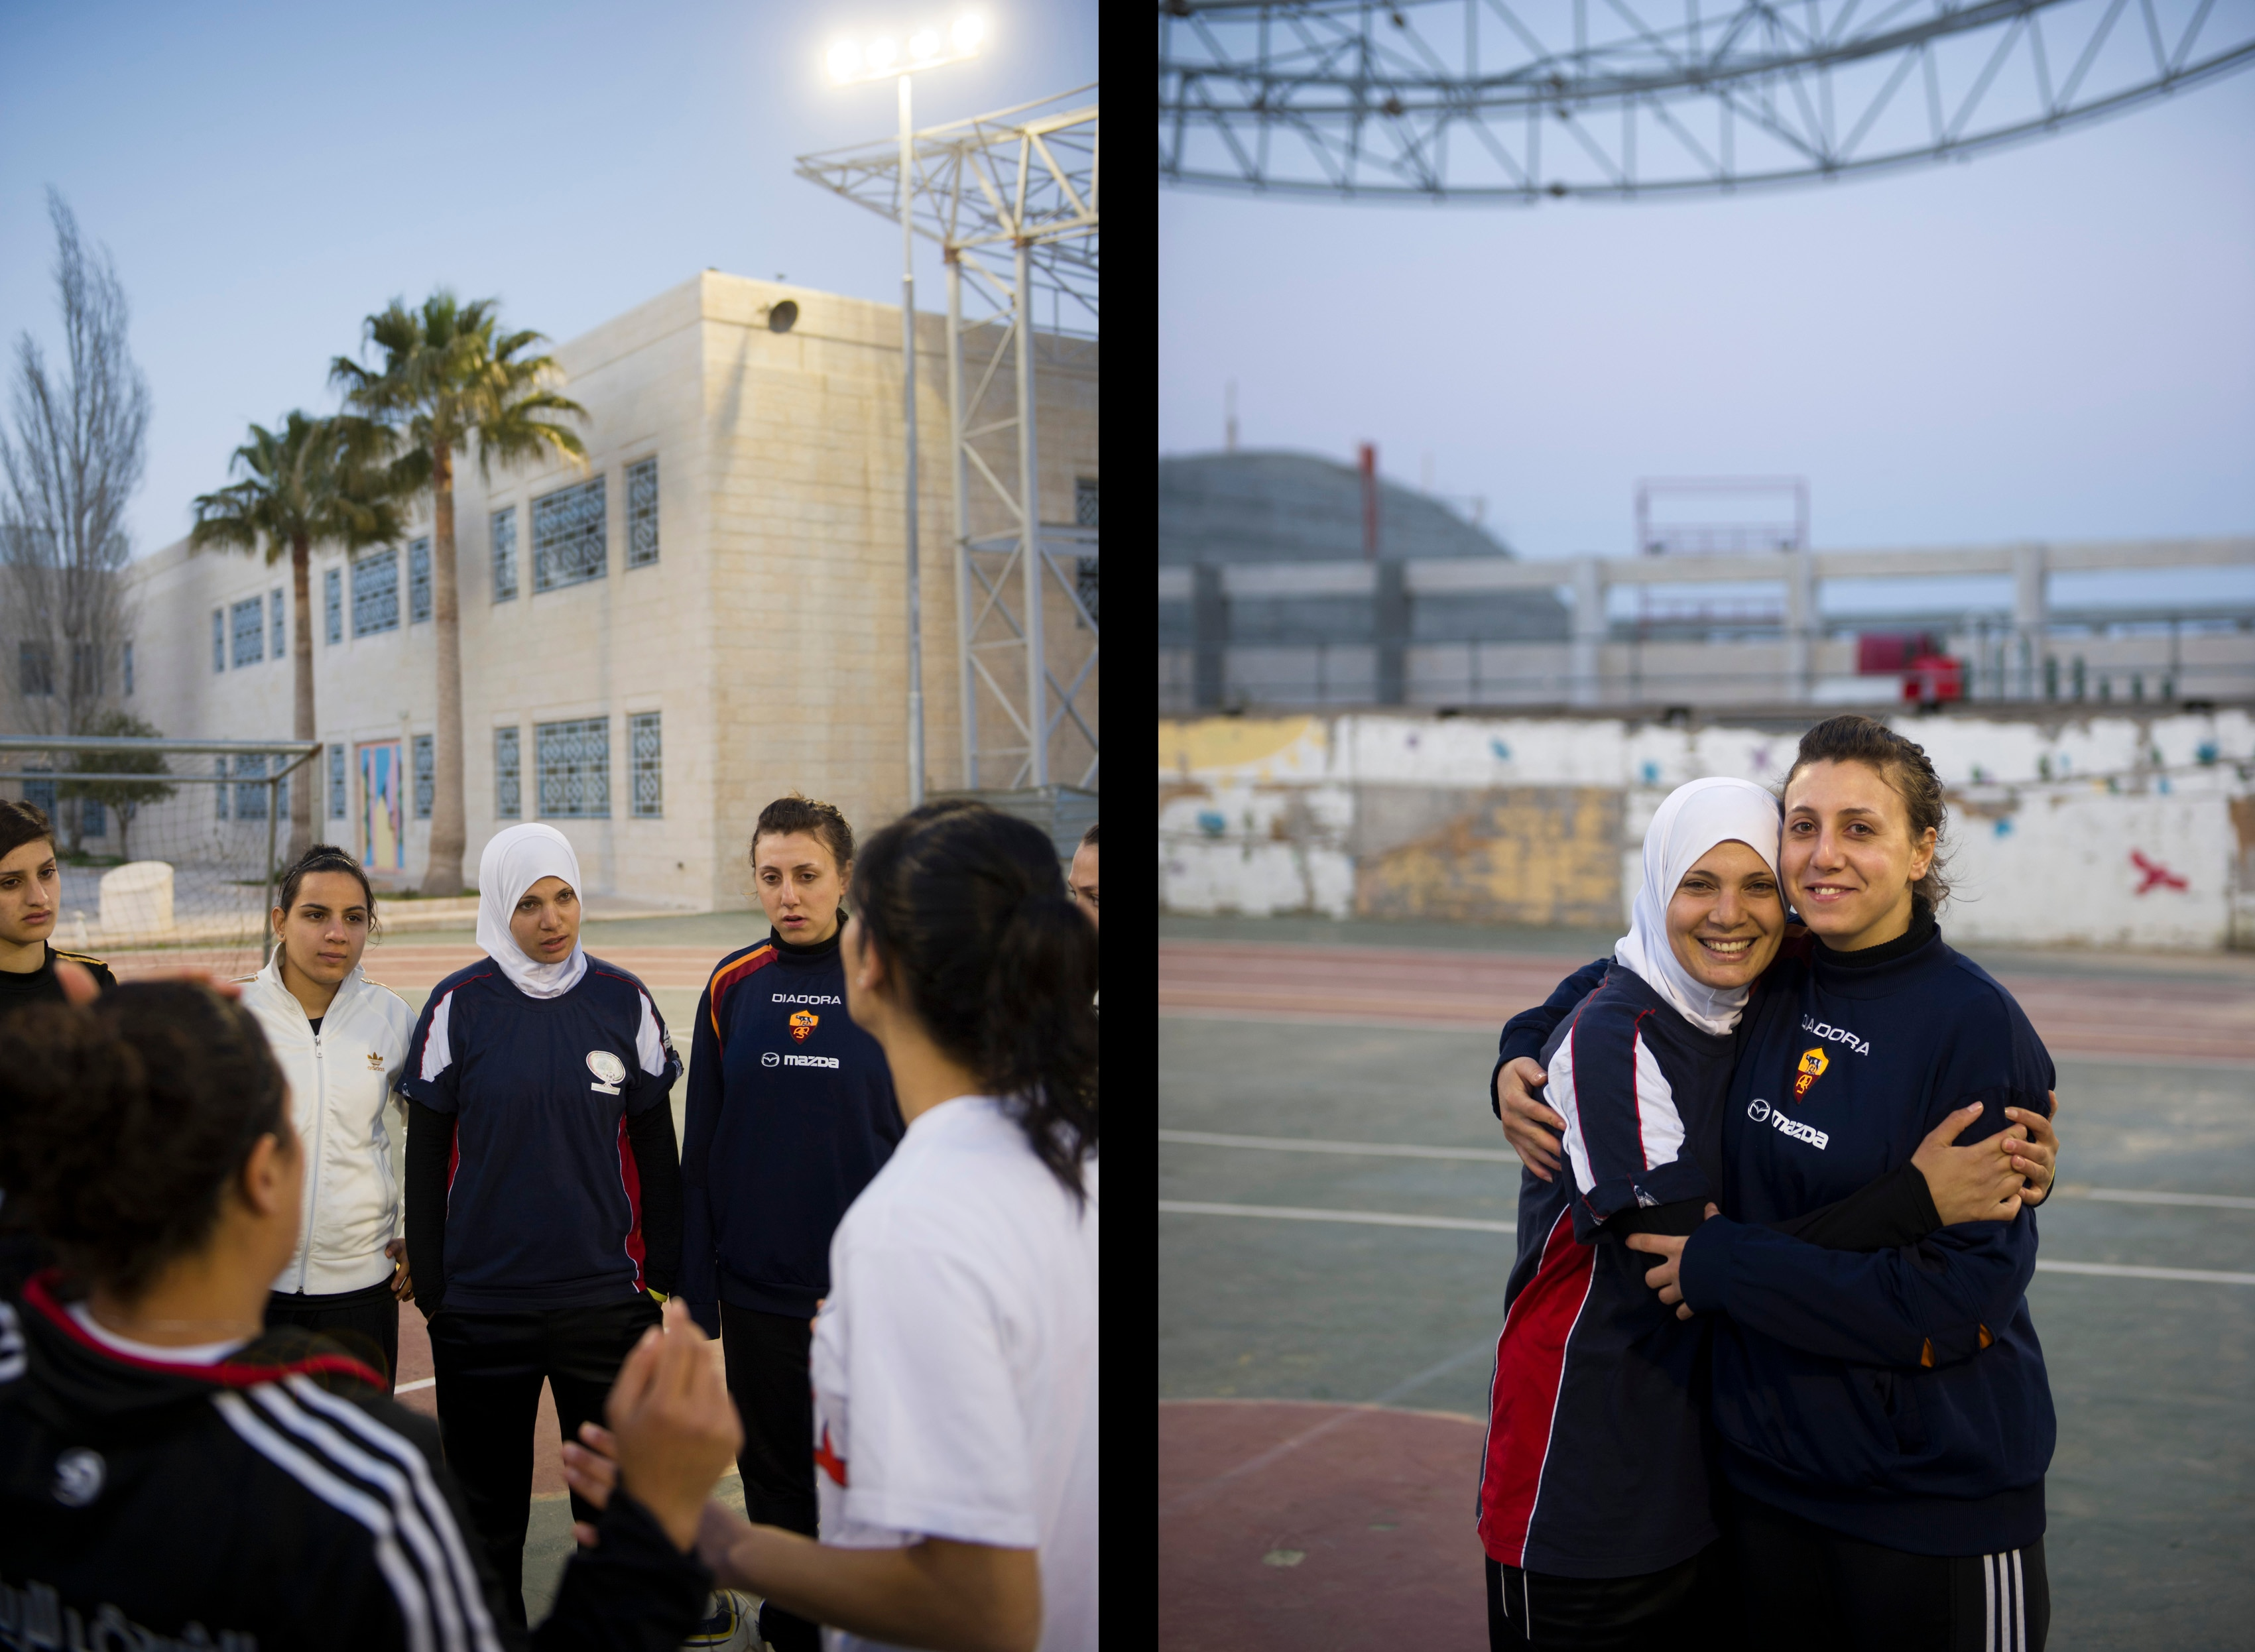 Players of Diyar Bethlehem during an evening training session (left), and Nivin and Nadin al-Kolyab, one of the strikers and the goal keeper of their team. Although both are Muslim, only Nivin is wearing the headscarf.